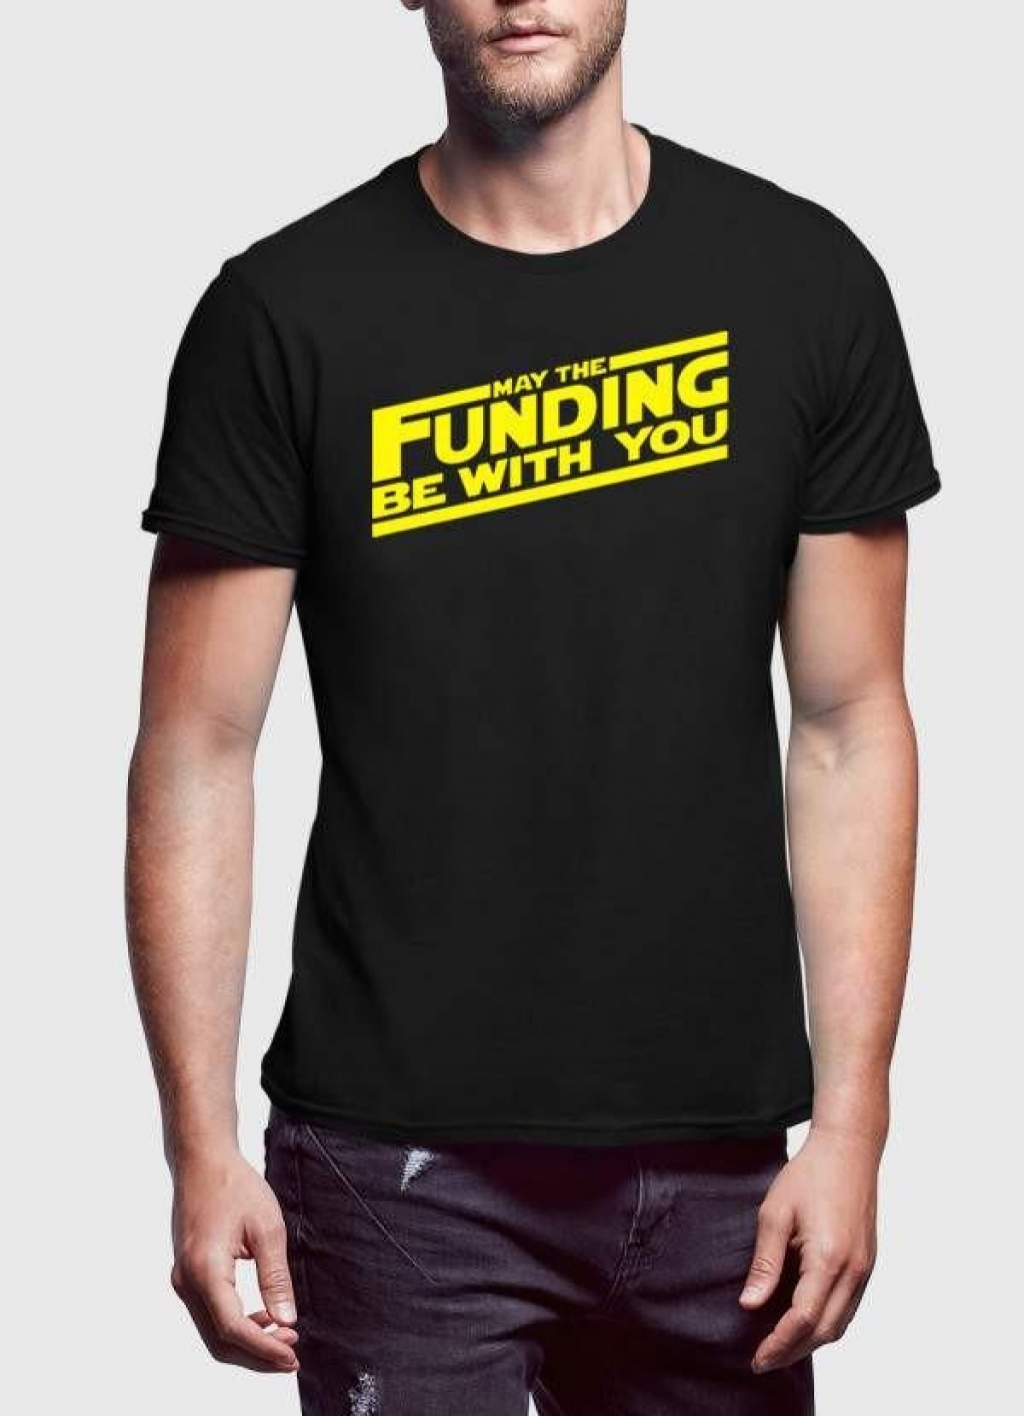 14992549940_Affordable_MAY_THE_FUNDING_WITH_YOU_T-Shirt-black.jpg